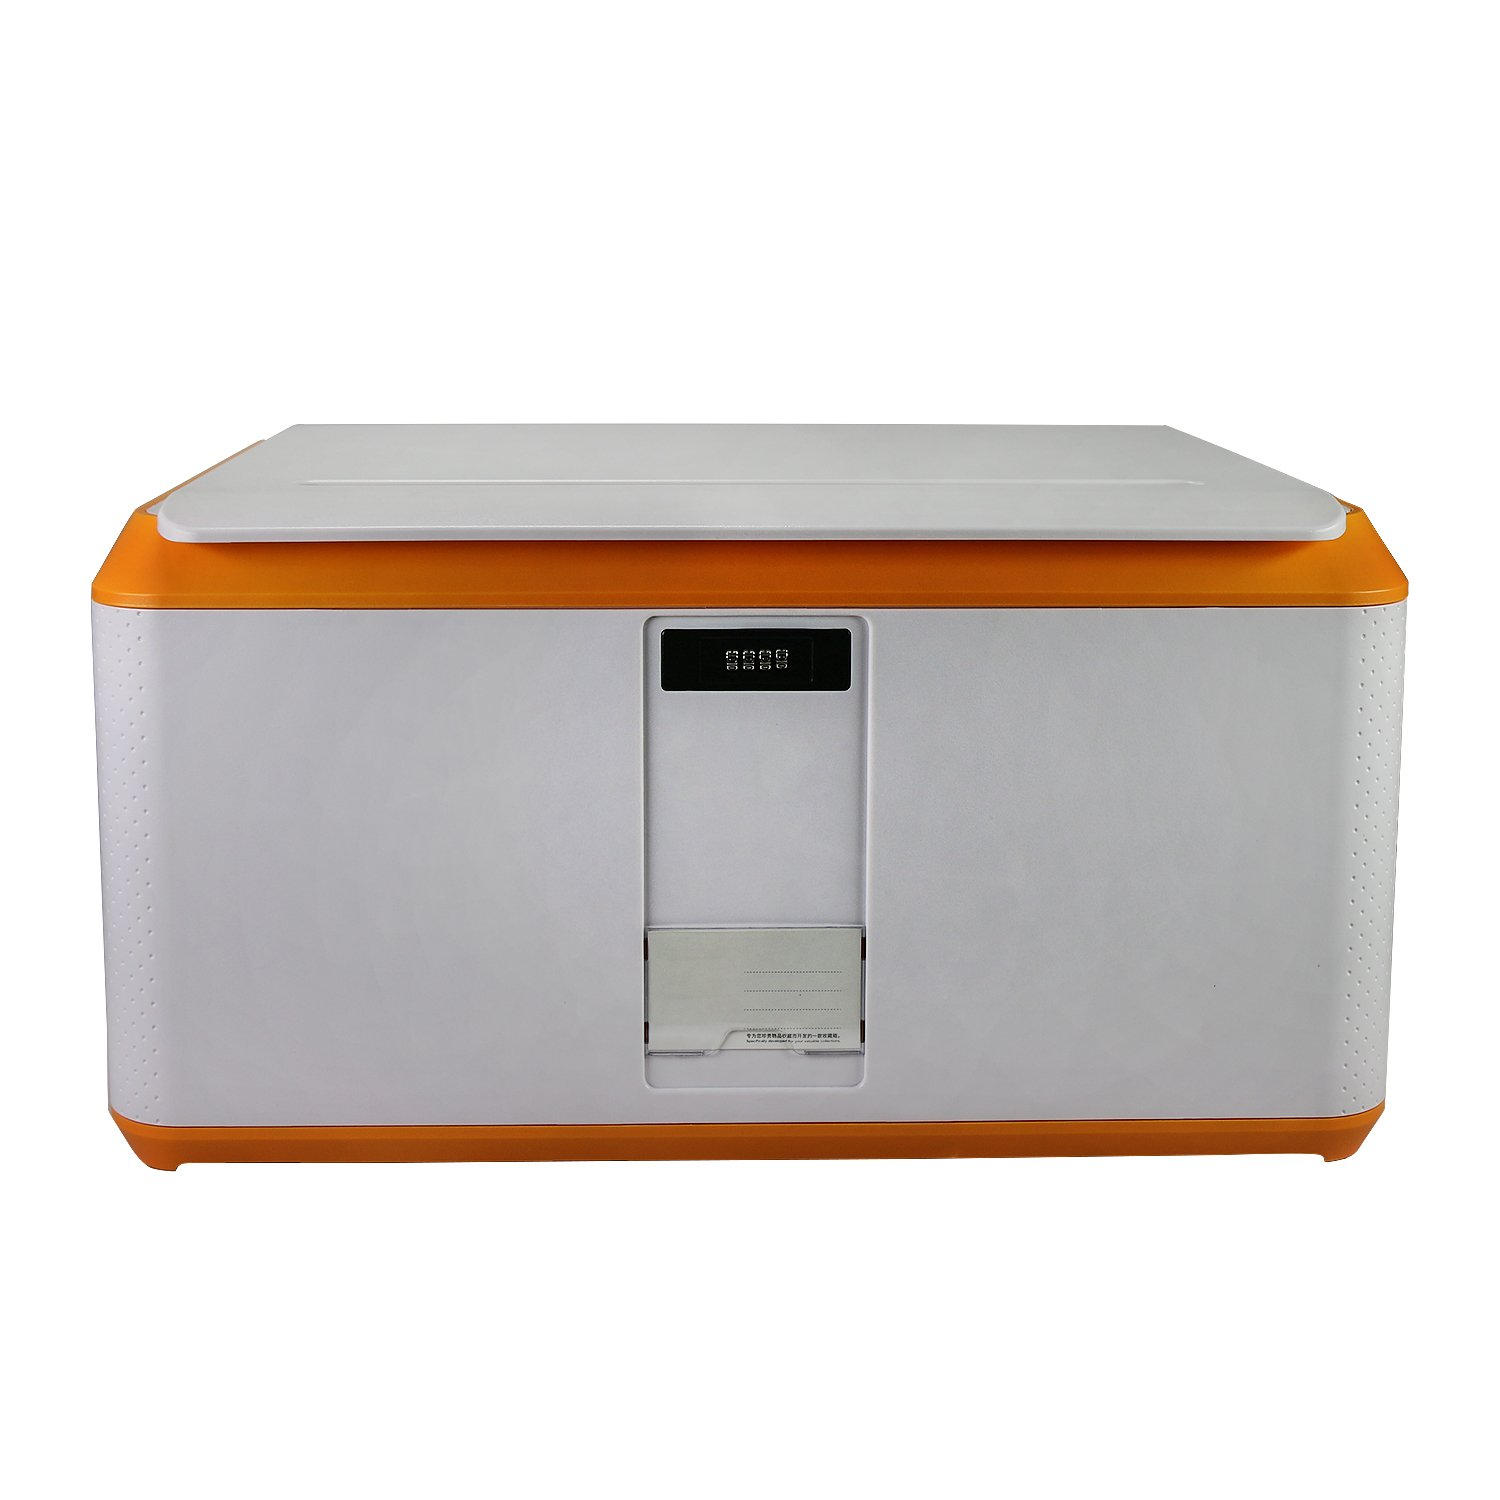 EVERTOP Extra Large Deck Box for Home, Office, Car, White with Code Lock (A-Orange)